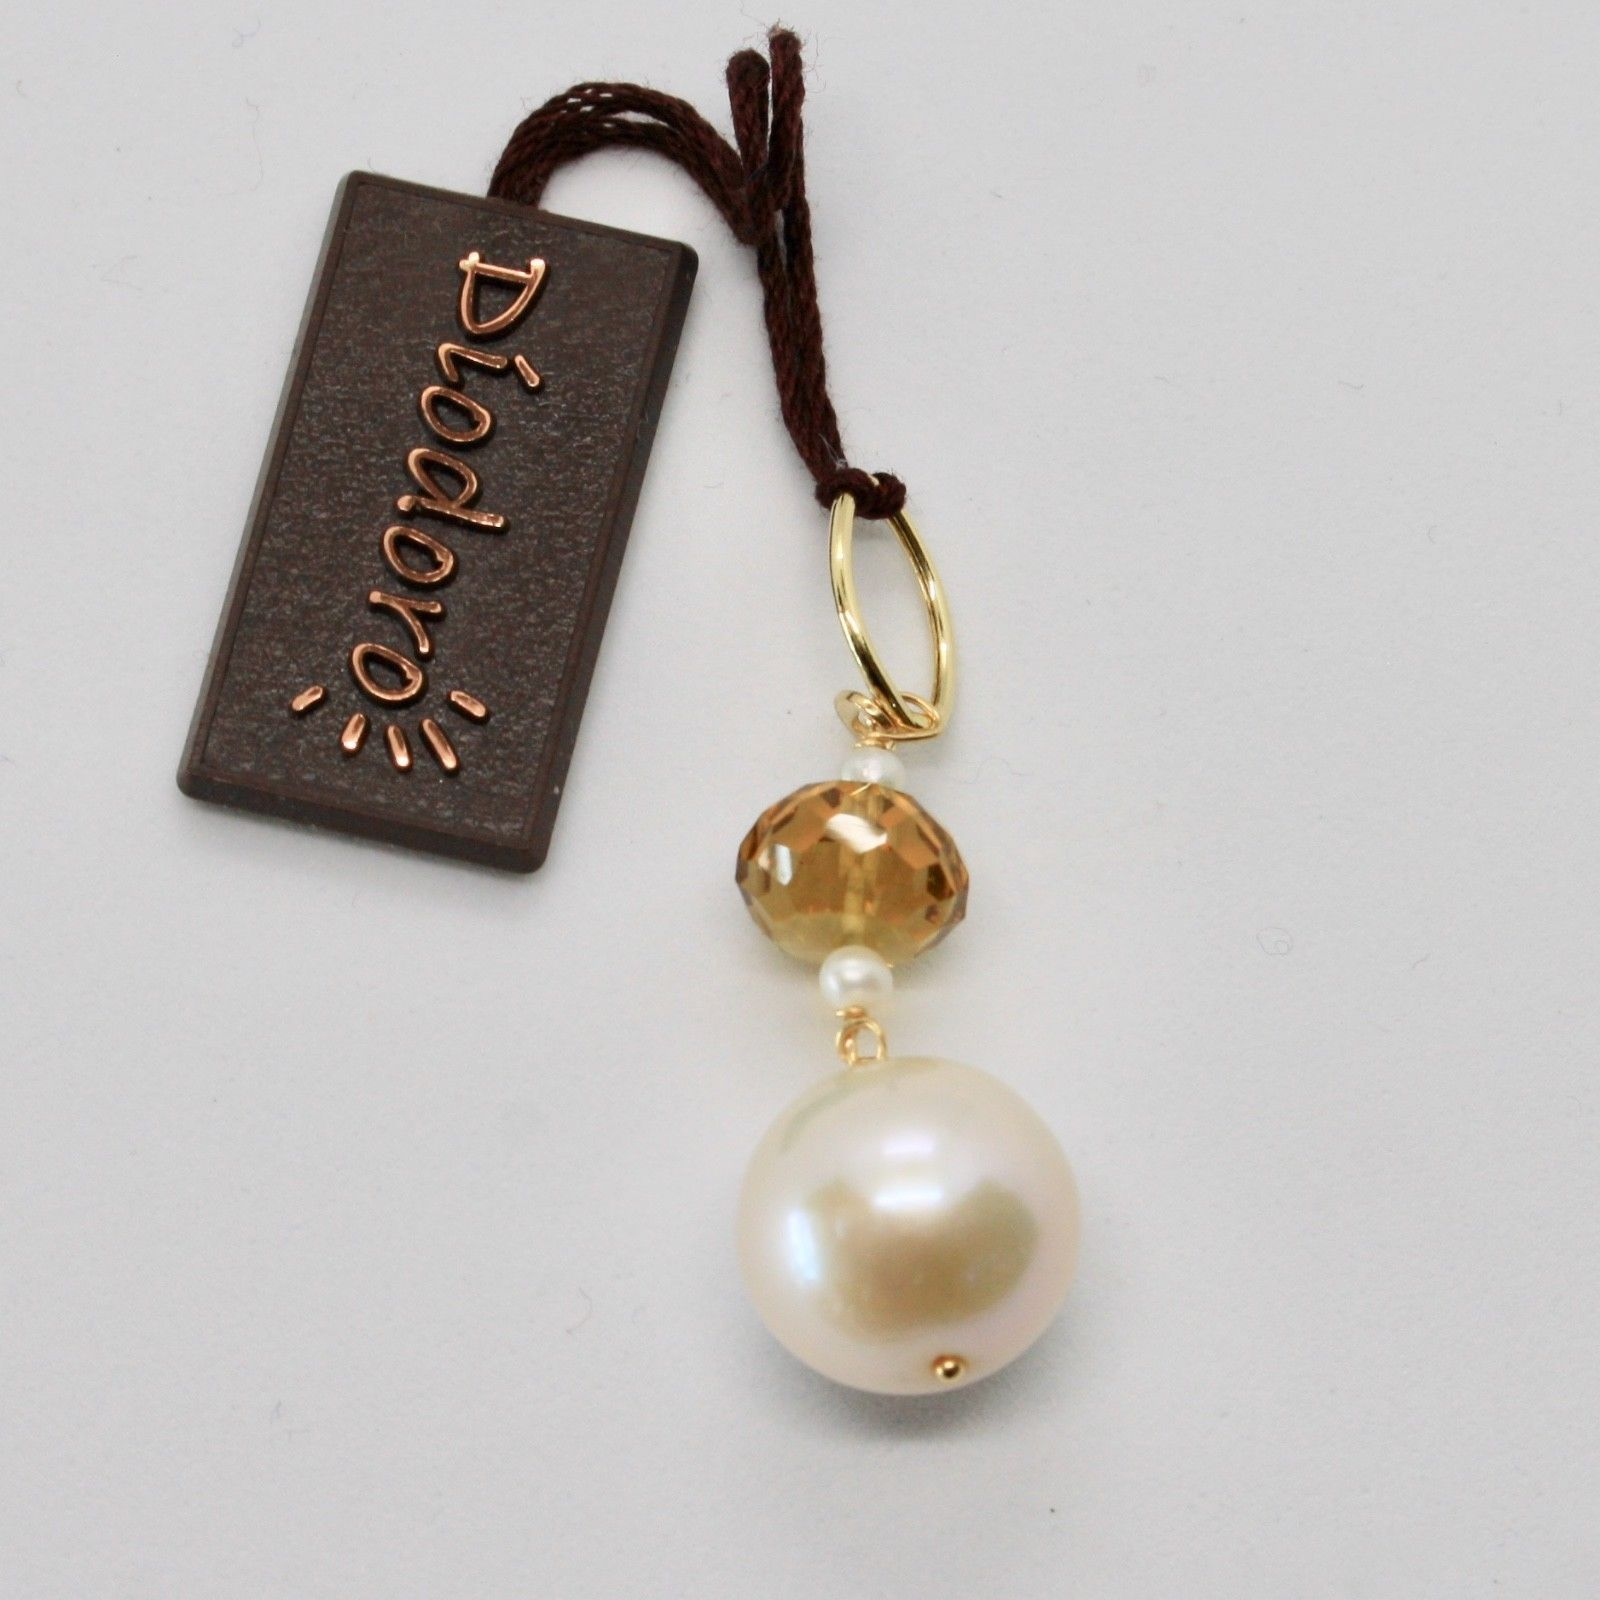 PENDANT YELLOW GOLD 18K 750 WITH PEARL WHITE FRESH WATER AND QUARTZ BEER